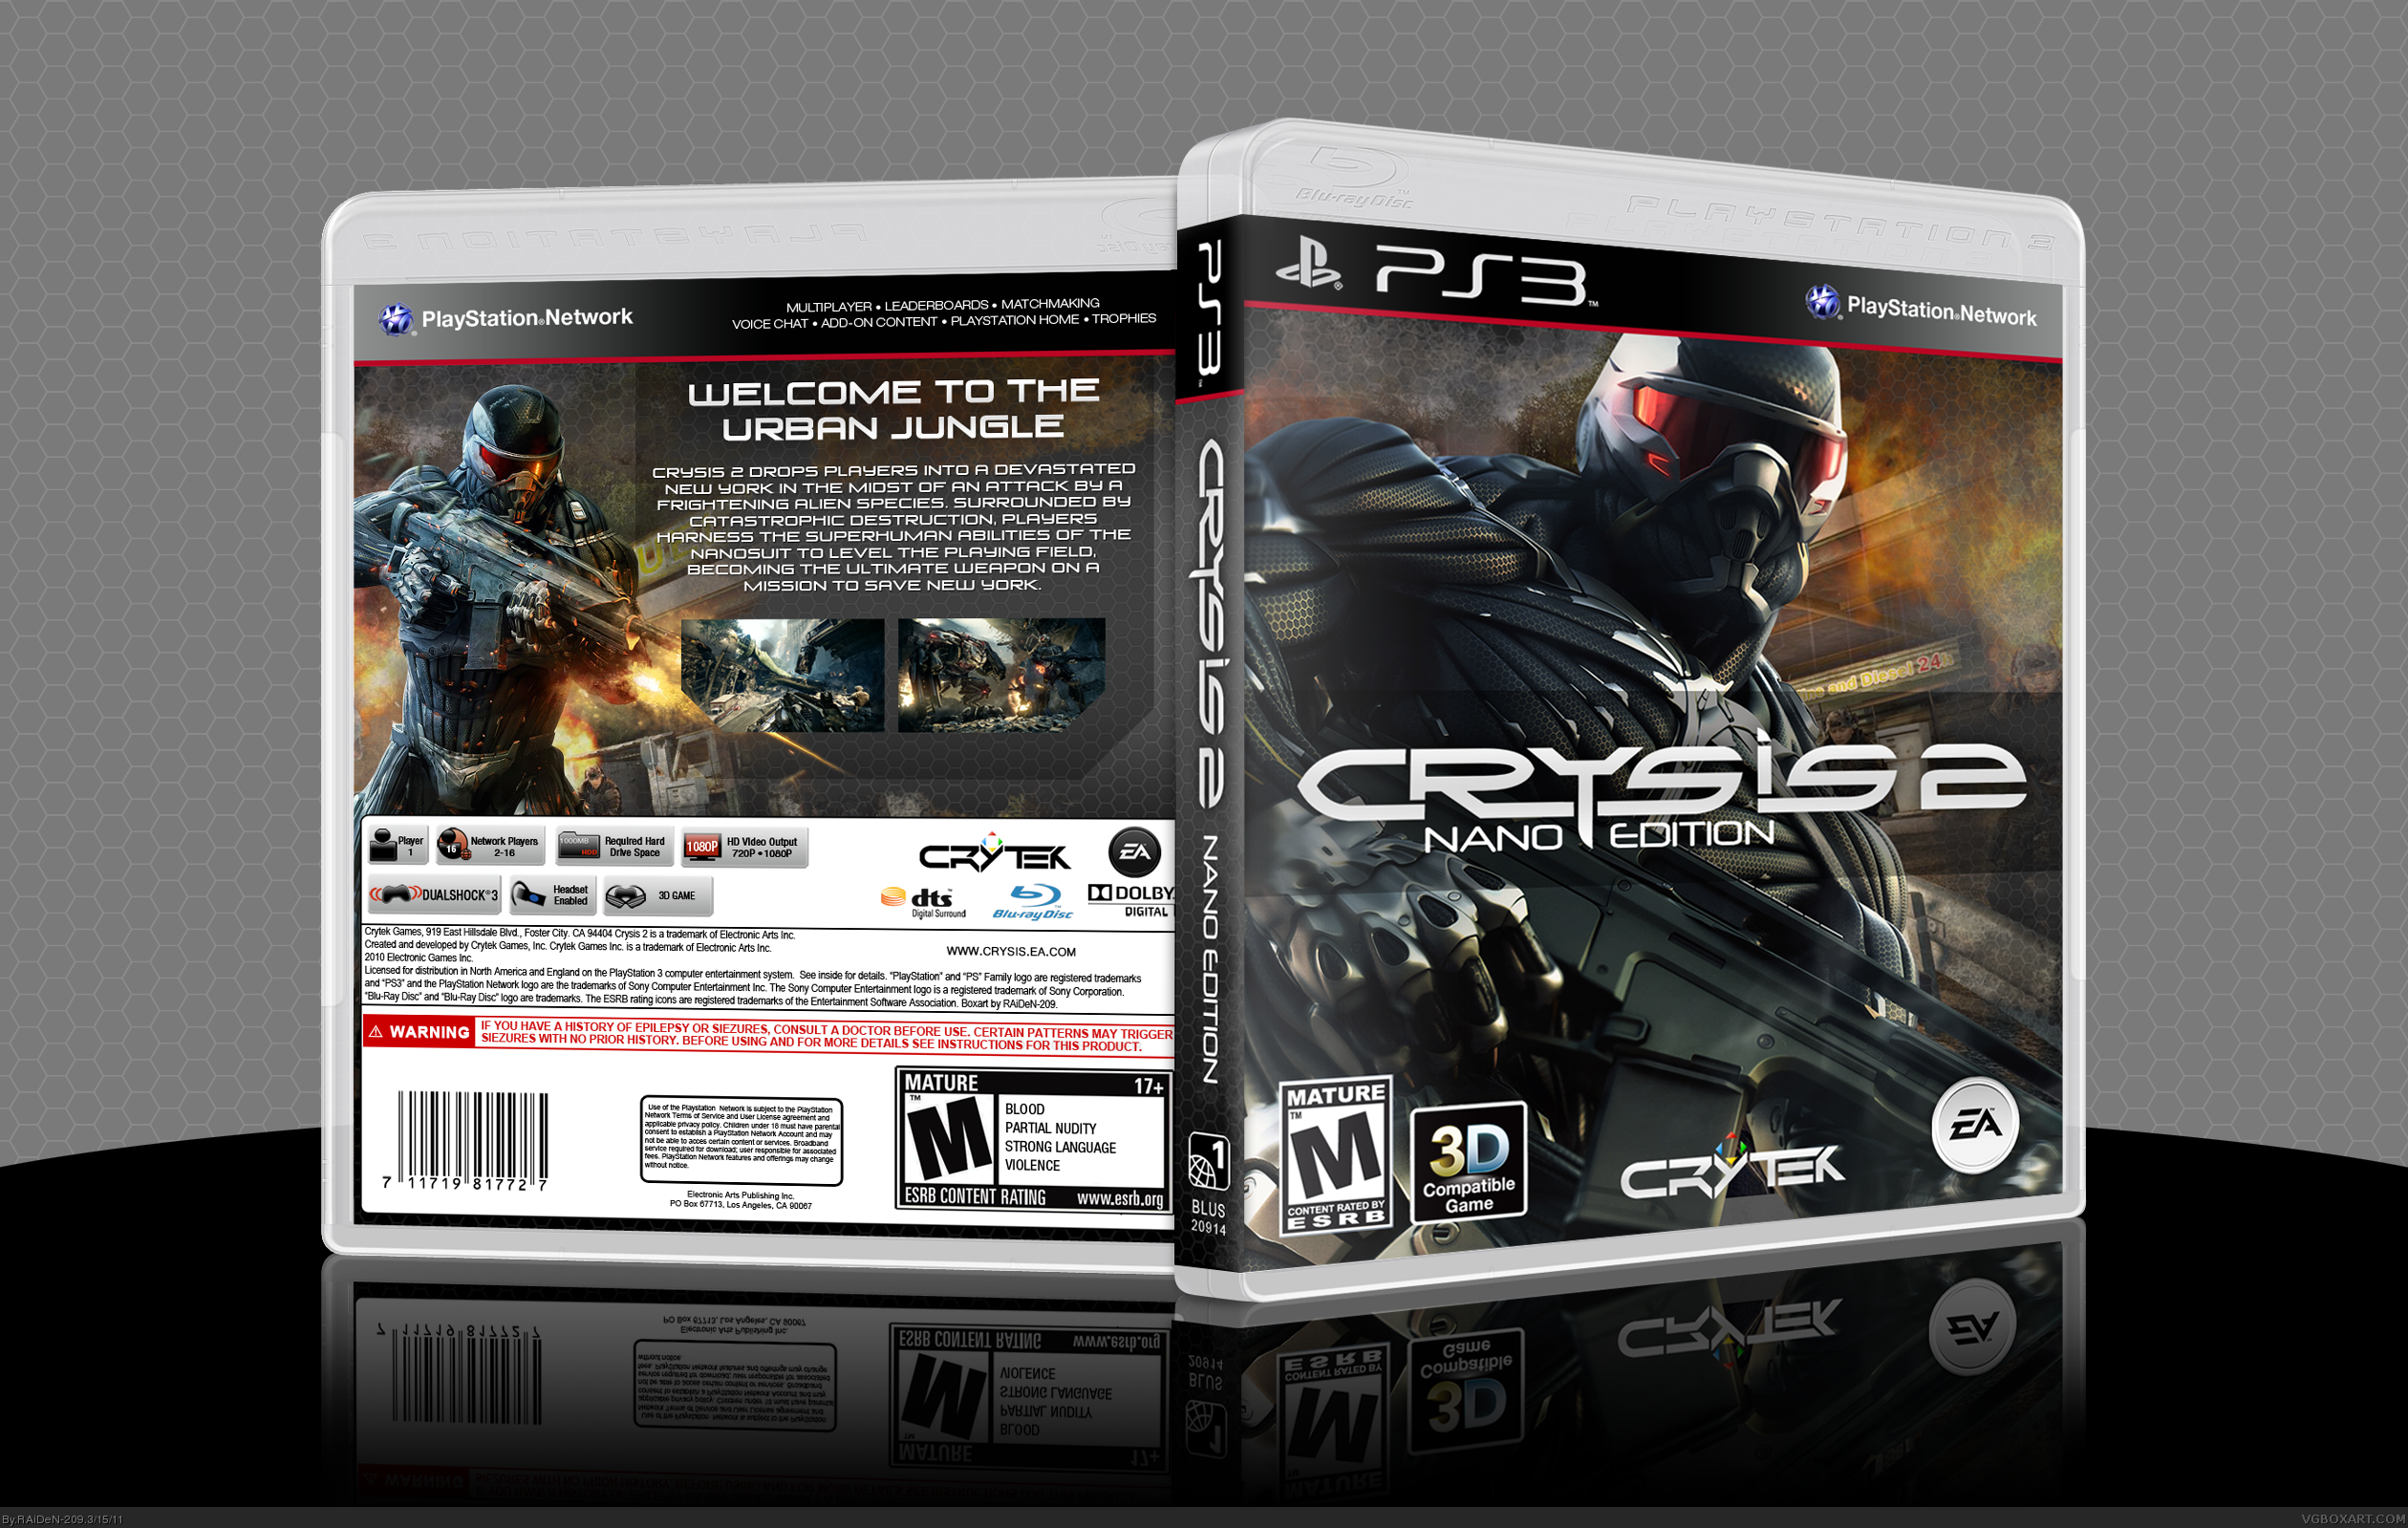 Crysis 2 box cover